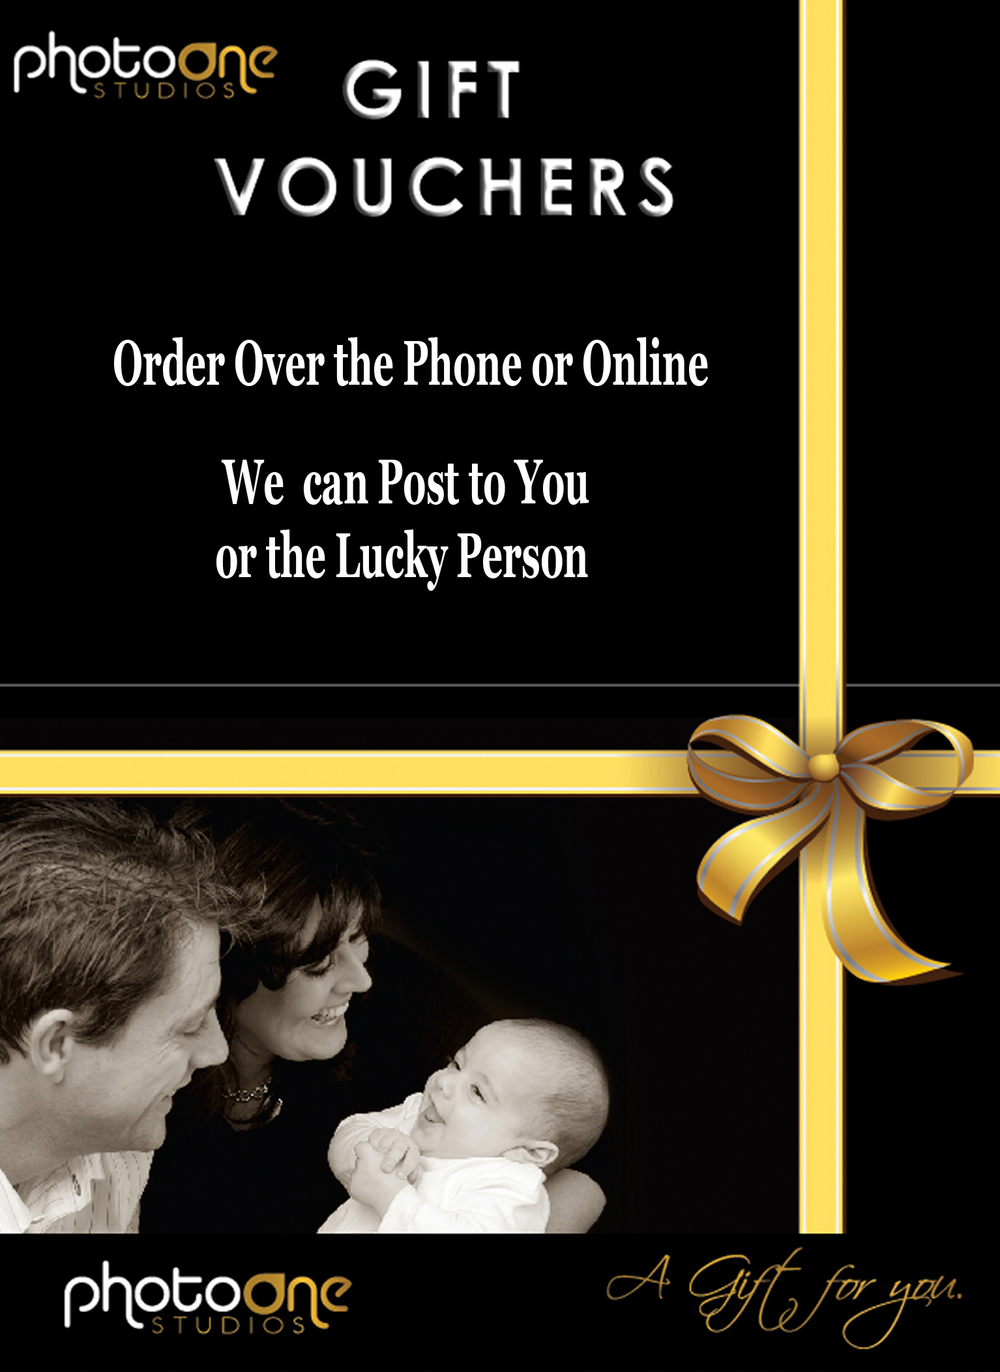 voucher photo one galway.jpg